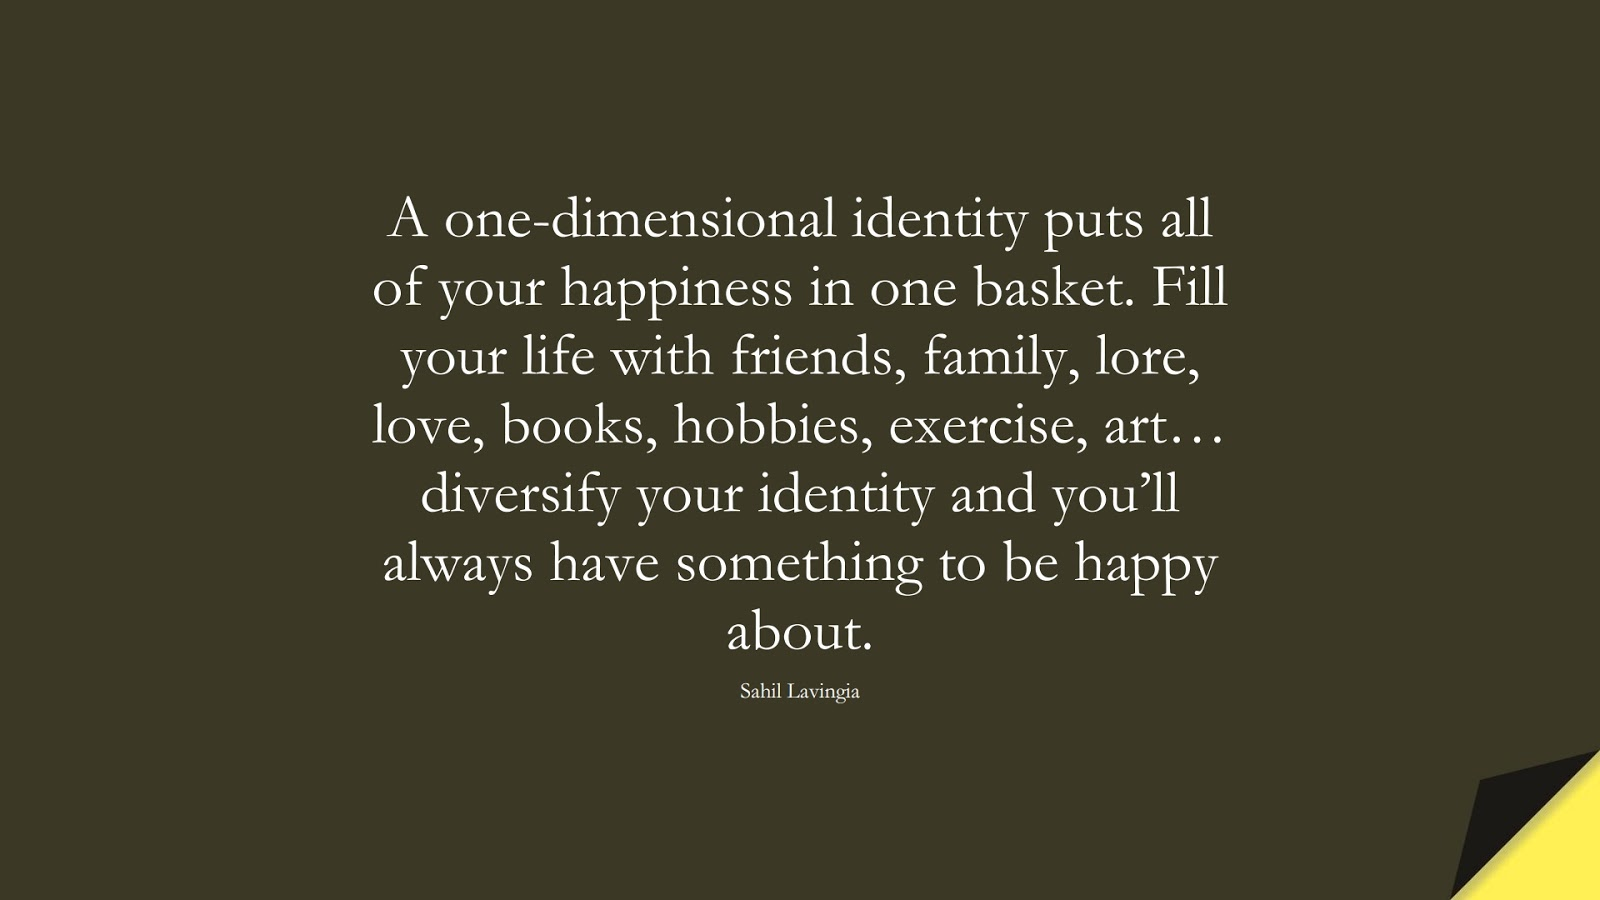 A one-dimensional identity puts all of your happiness in one basket. Fill your life with friends, family, lore, love, books, hobbies, exercise, art… diversify your identity and you'll always have something to be happy about. (Sahil Lavingia);  #LoveYourselfQuotes